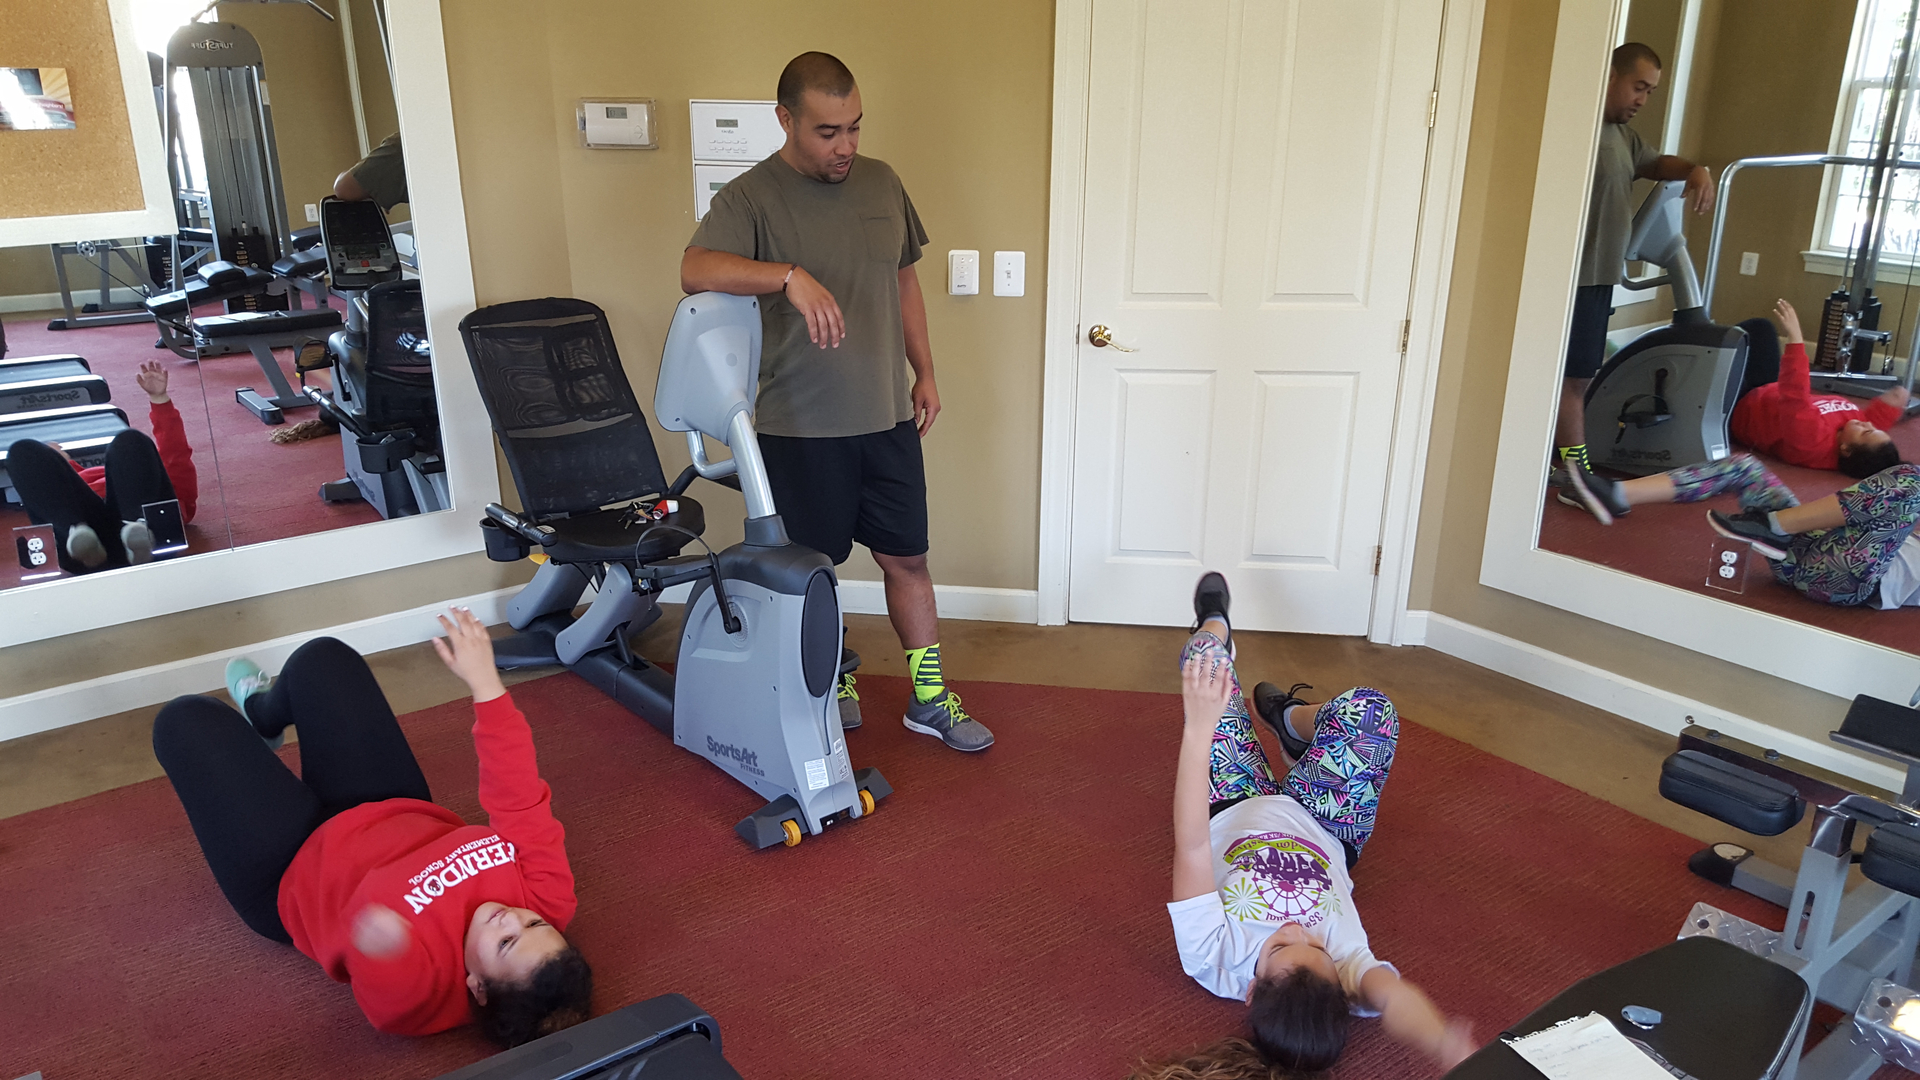 Check Out Our Current Personal Training Specials -